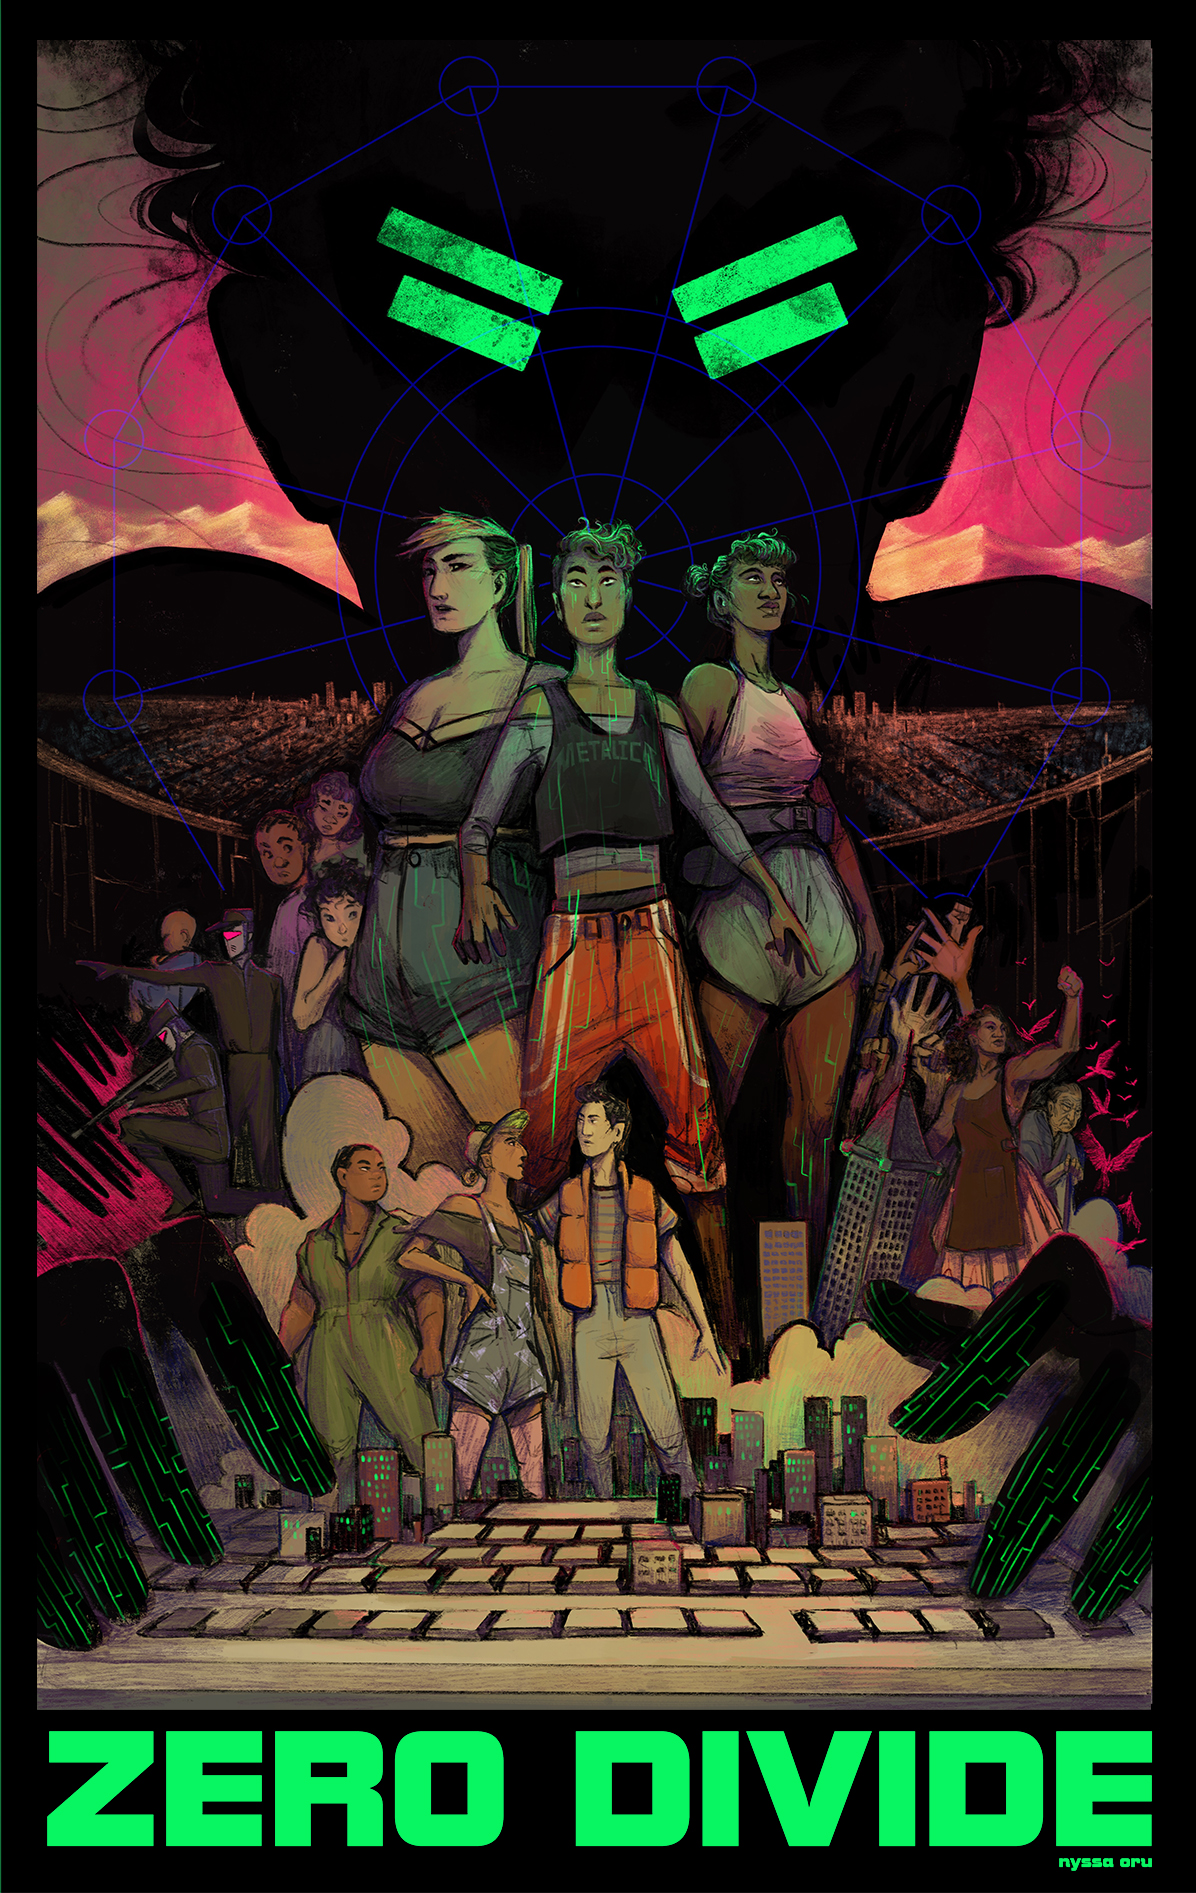 Three lesbian moms fight to protect their home in a retro-scifi adventure. A choose-Your-Own-Adventure graphic-Novel game in the work